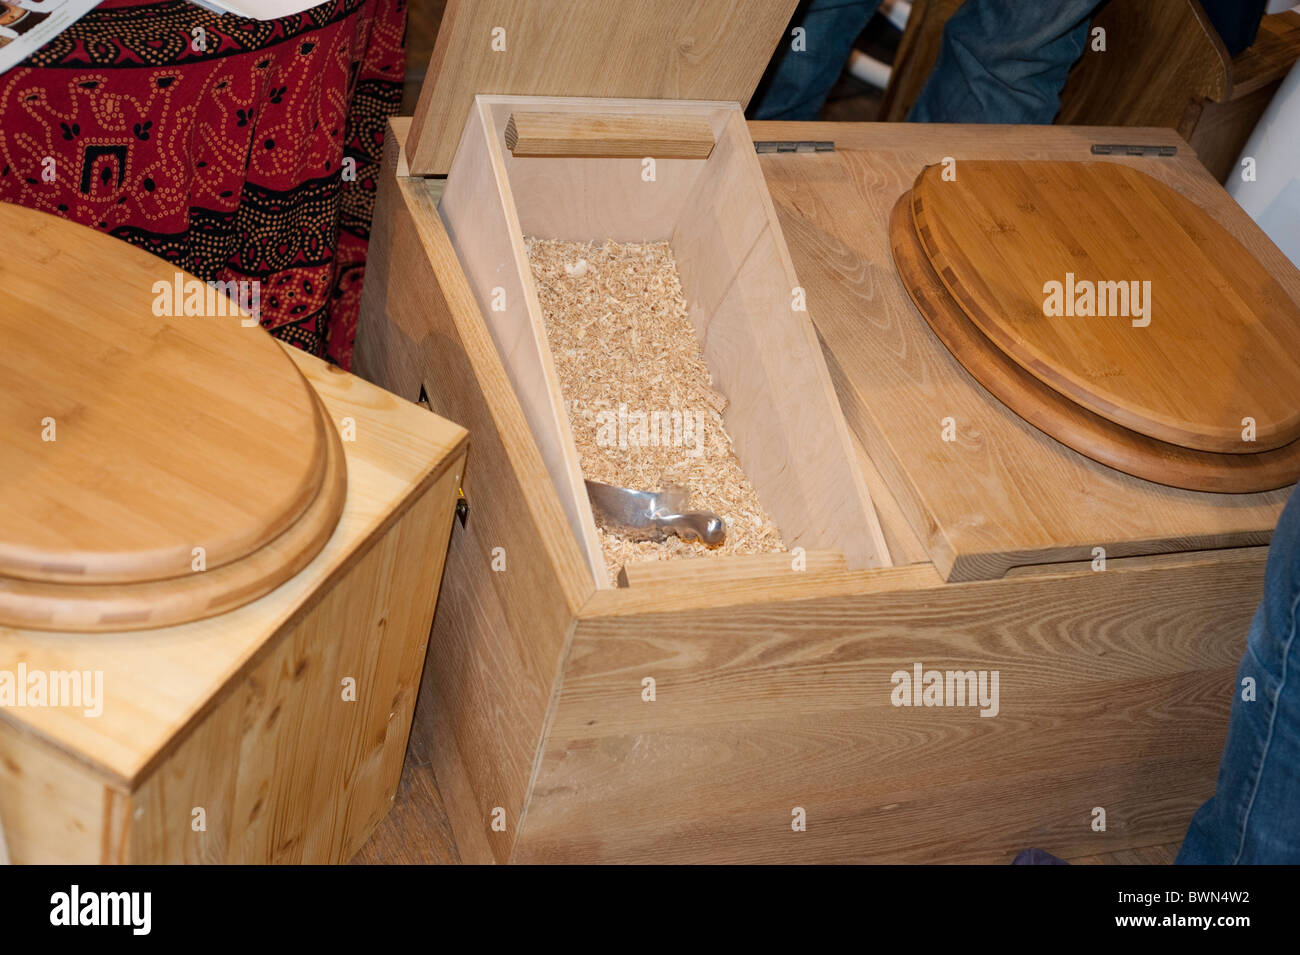 Appealing Build Composting Toilet Contemporary - Best image 3D ...